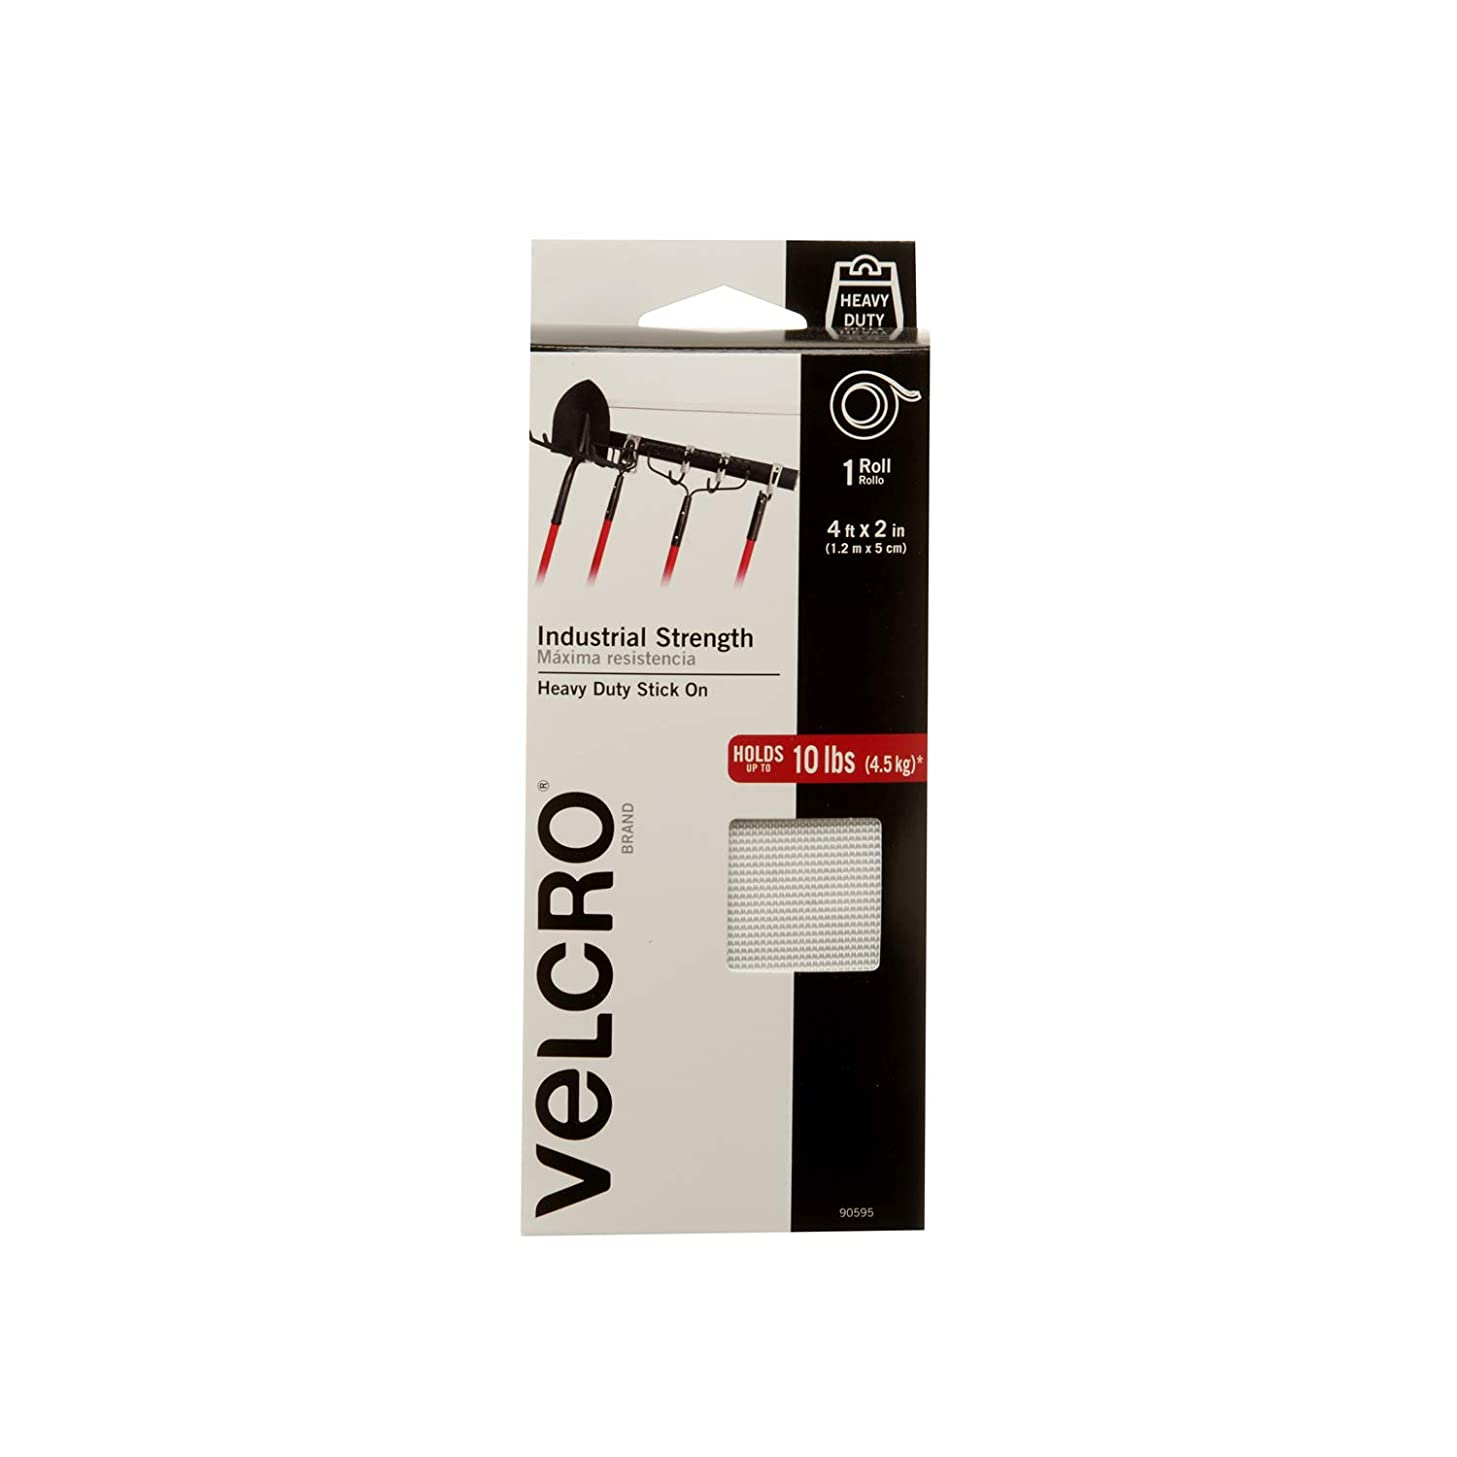 VELCRO Brand Industrial Strength Fasteners | Stick-On Adhesive | Professional Grade Heavy Duty Strength Holds up to 10 lbs on Smooth Surfaces | Indoor Outdoor Use | 4ft x 2in Tape, 4 Sets, White